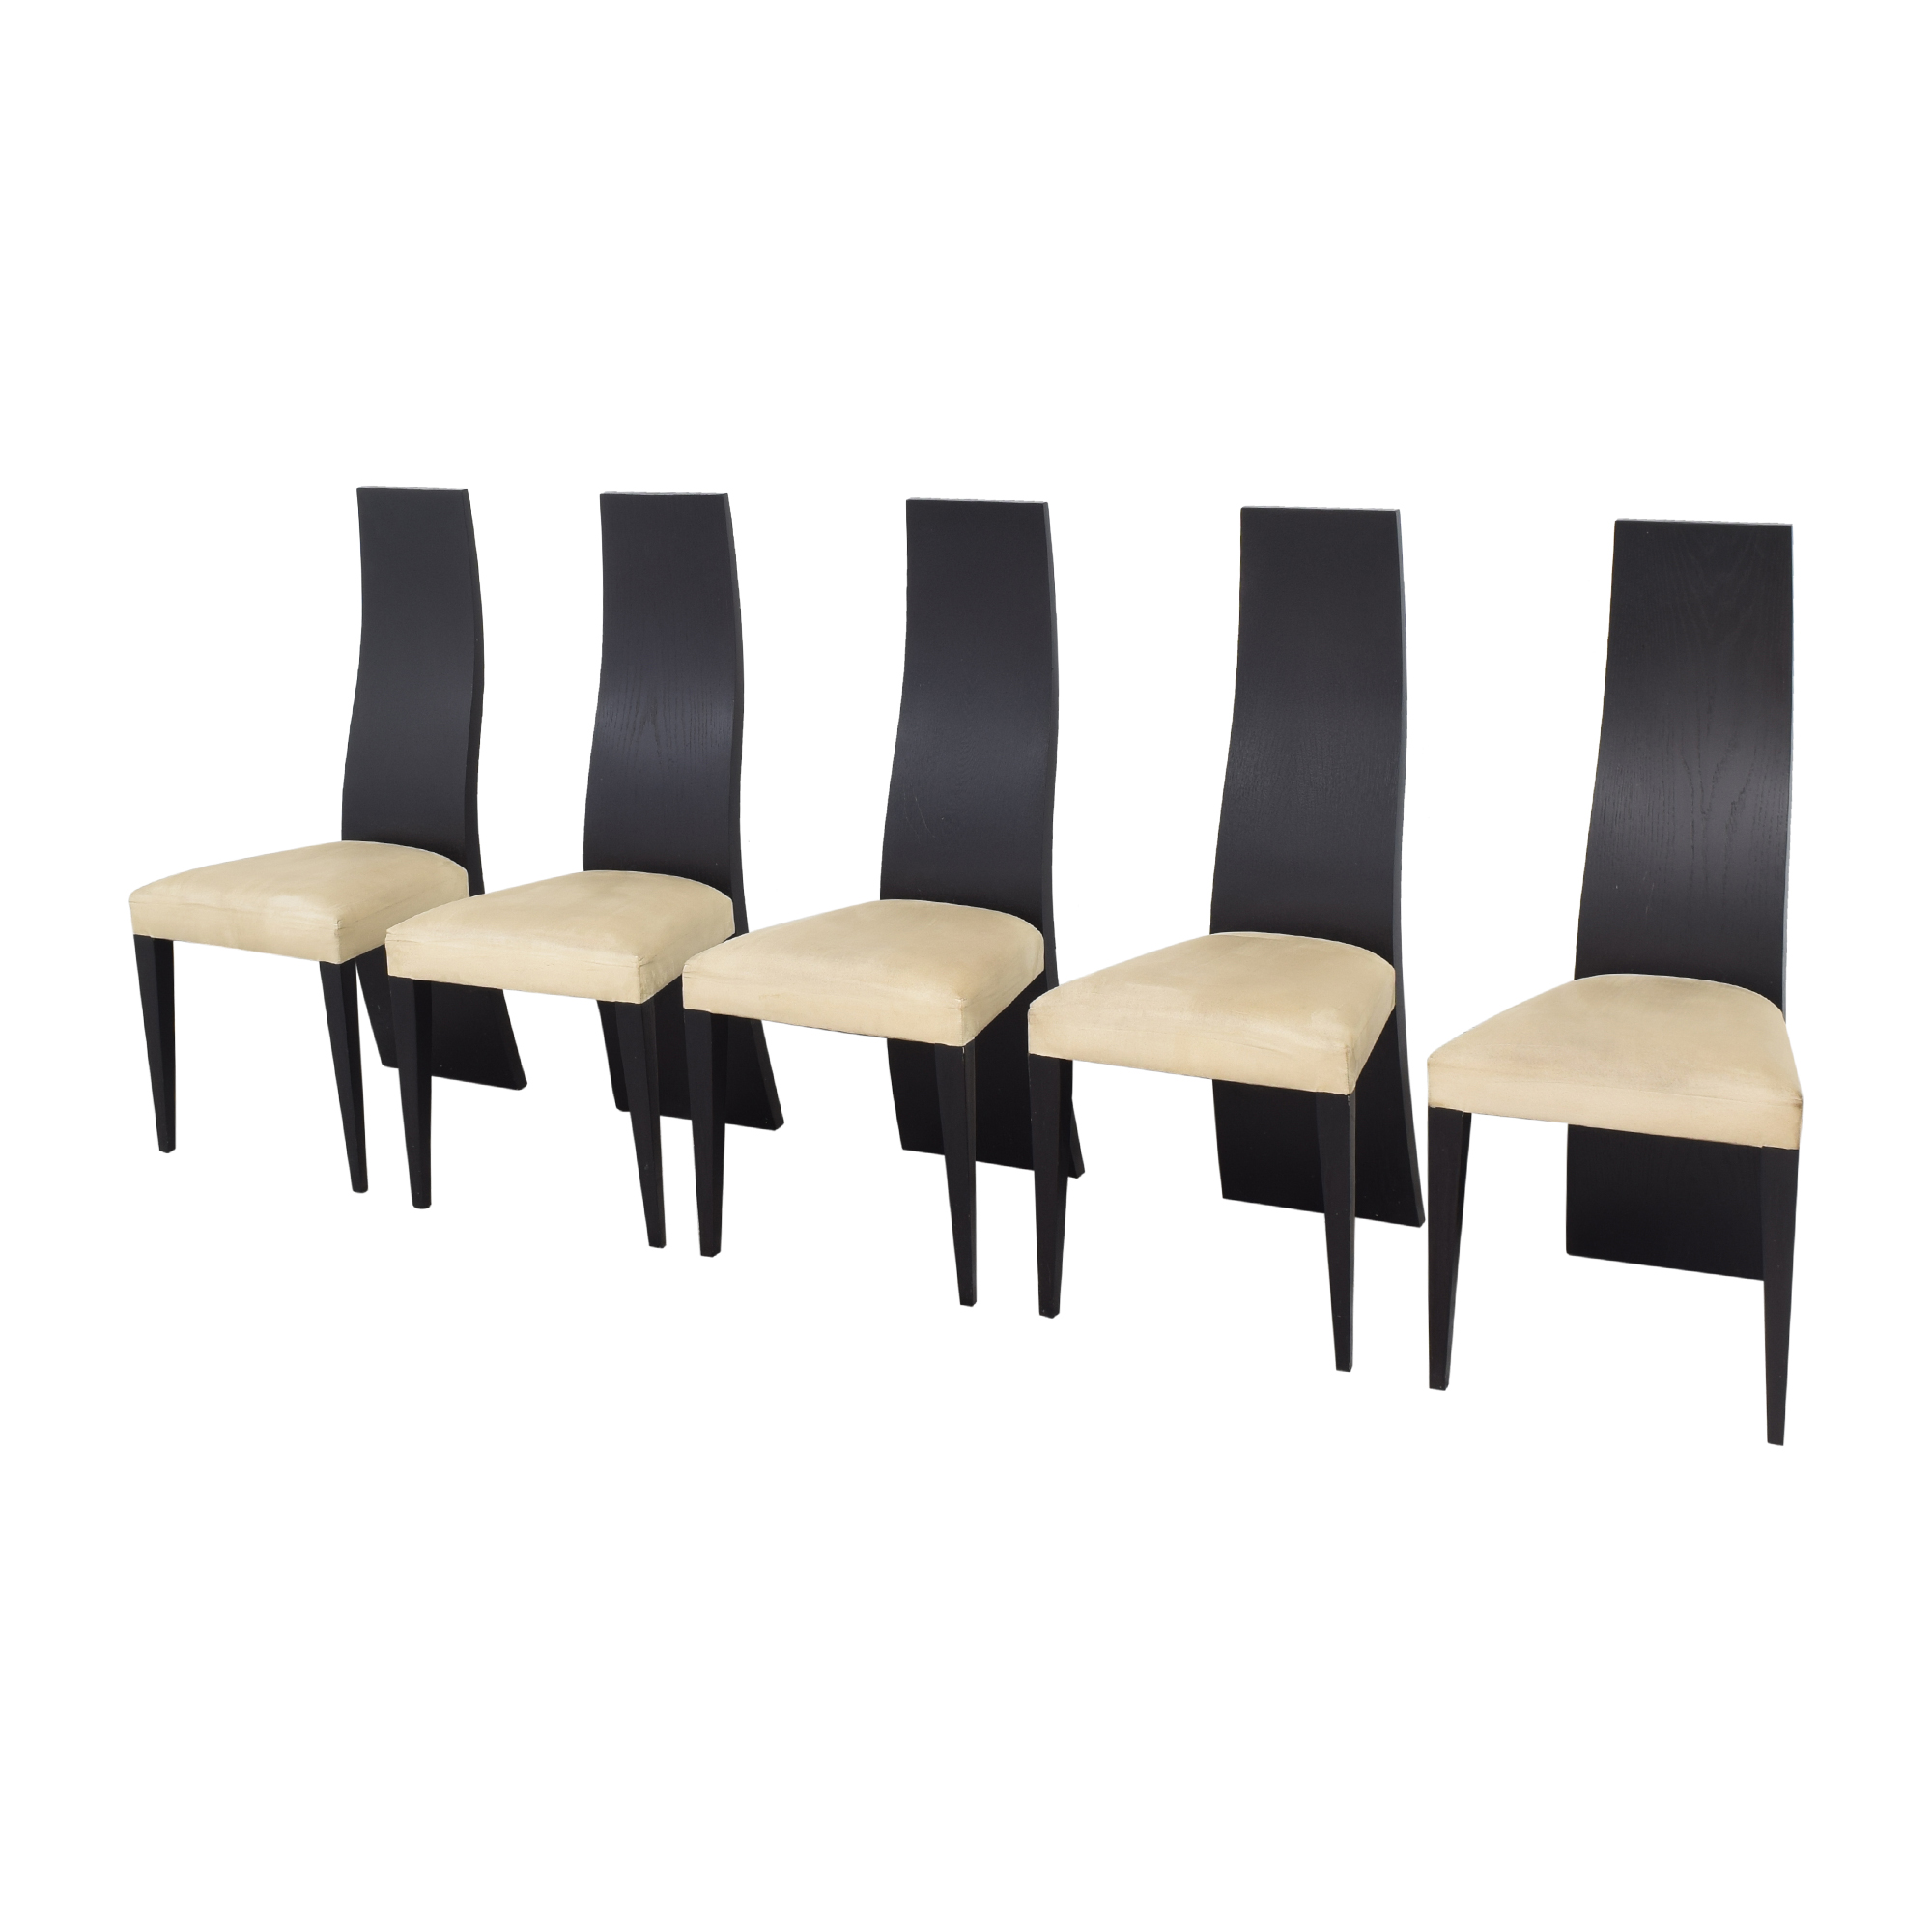 La Maison Contemporaine La Maison Contemporaine Solid Back Dining Chairs